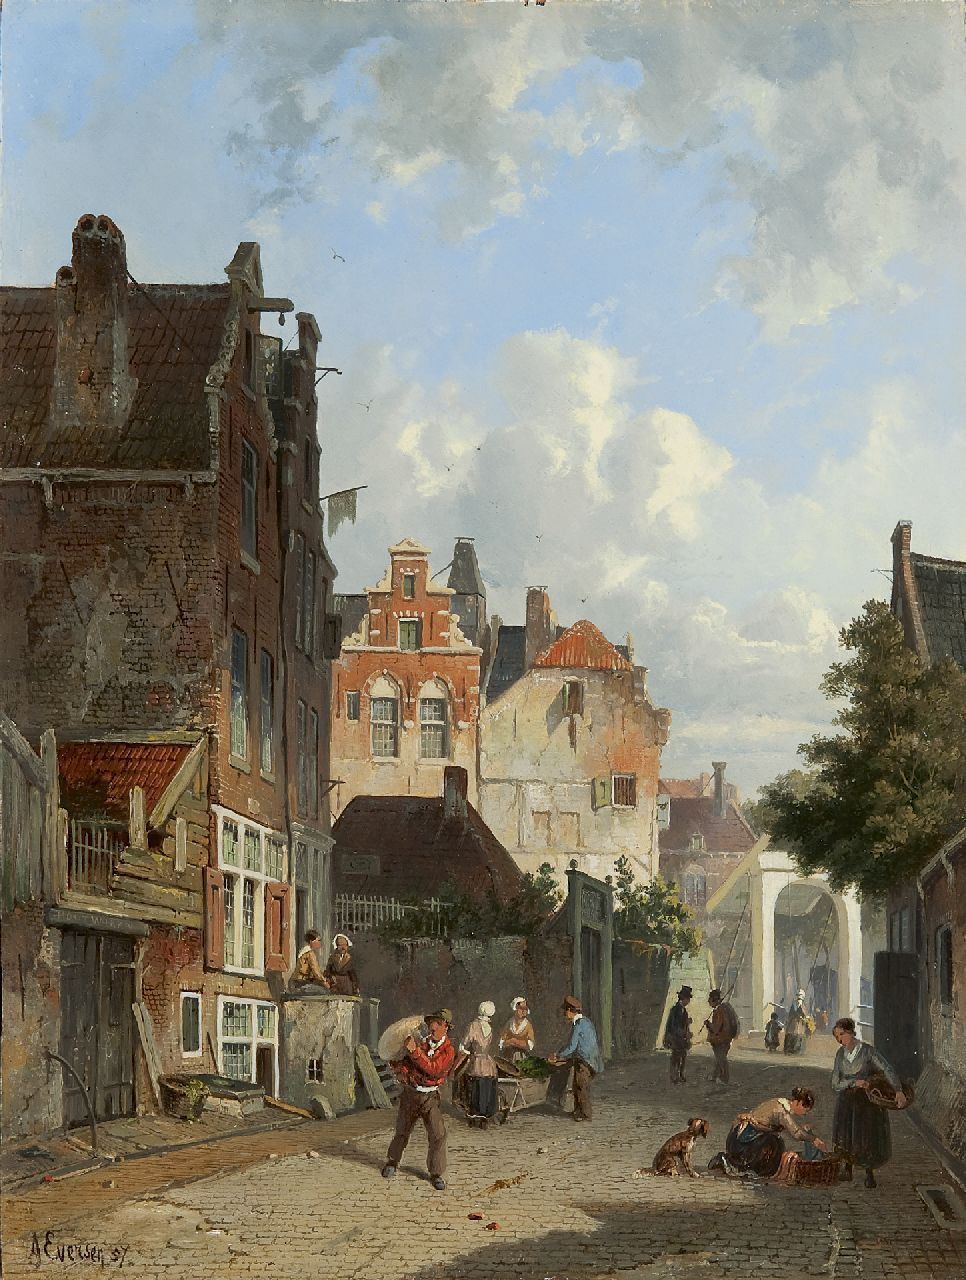 Eversen A.  | Adrianus Eversen, A Dutch street scene, oil on panel 33.5 x 25.1 cm, signed l.l. and dated '57